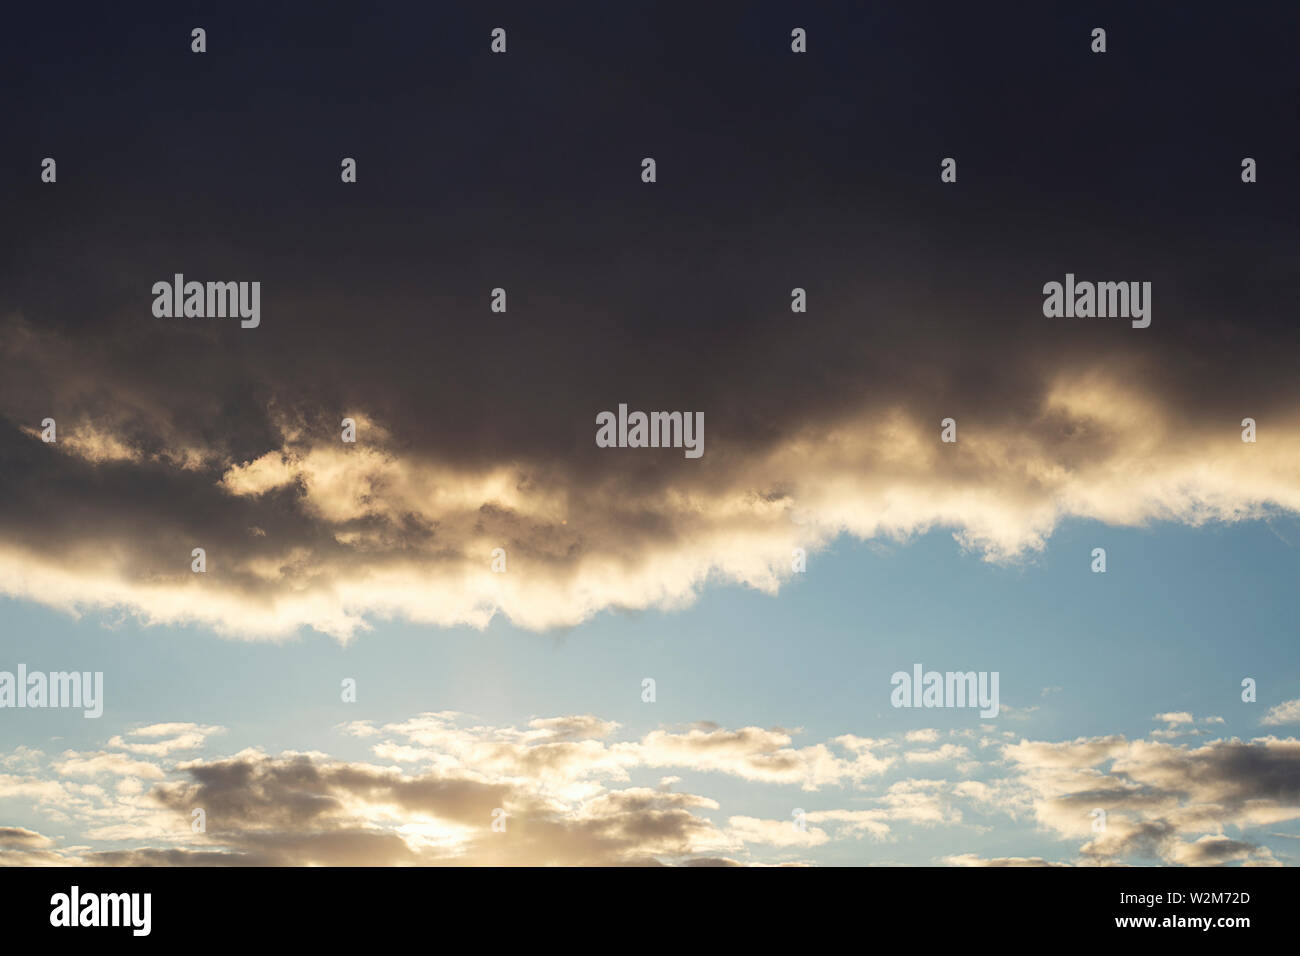 The sky is full of dark clouds in bad weather before a big storm rain. Big black gloomy rain cloud in the sky over the cloudless blue sky . - Stock Image